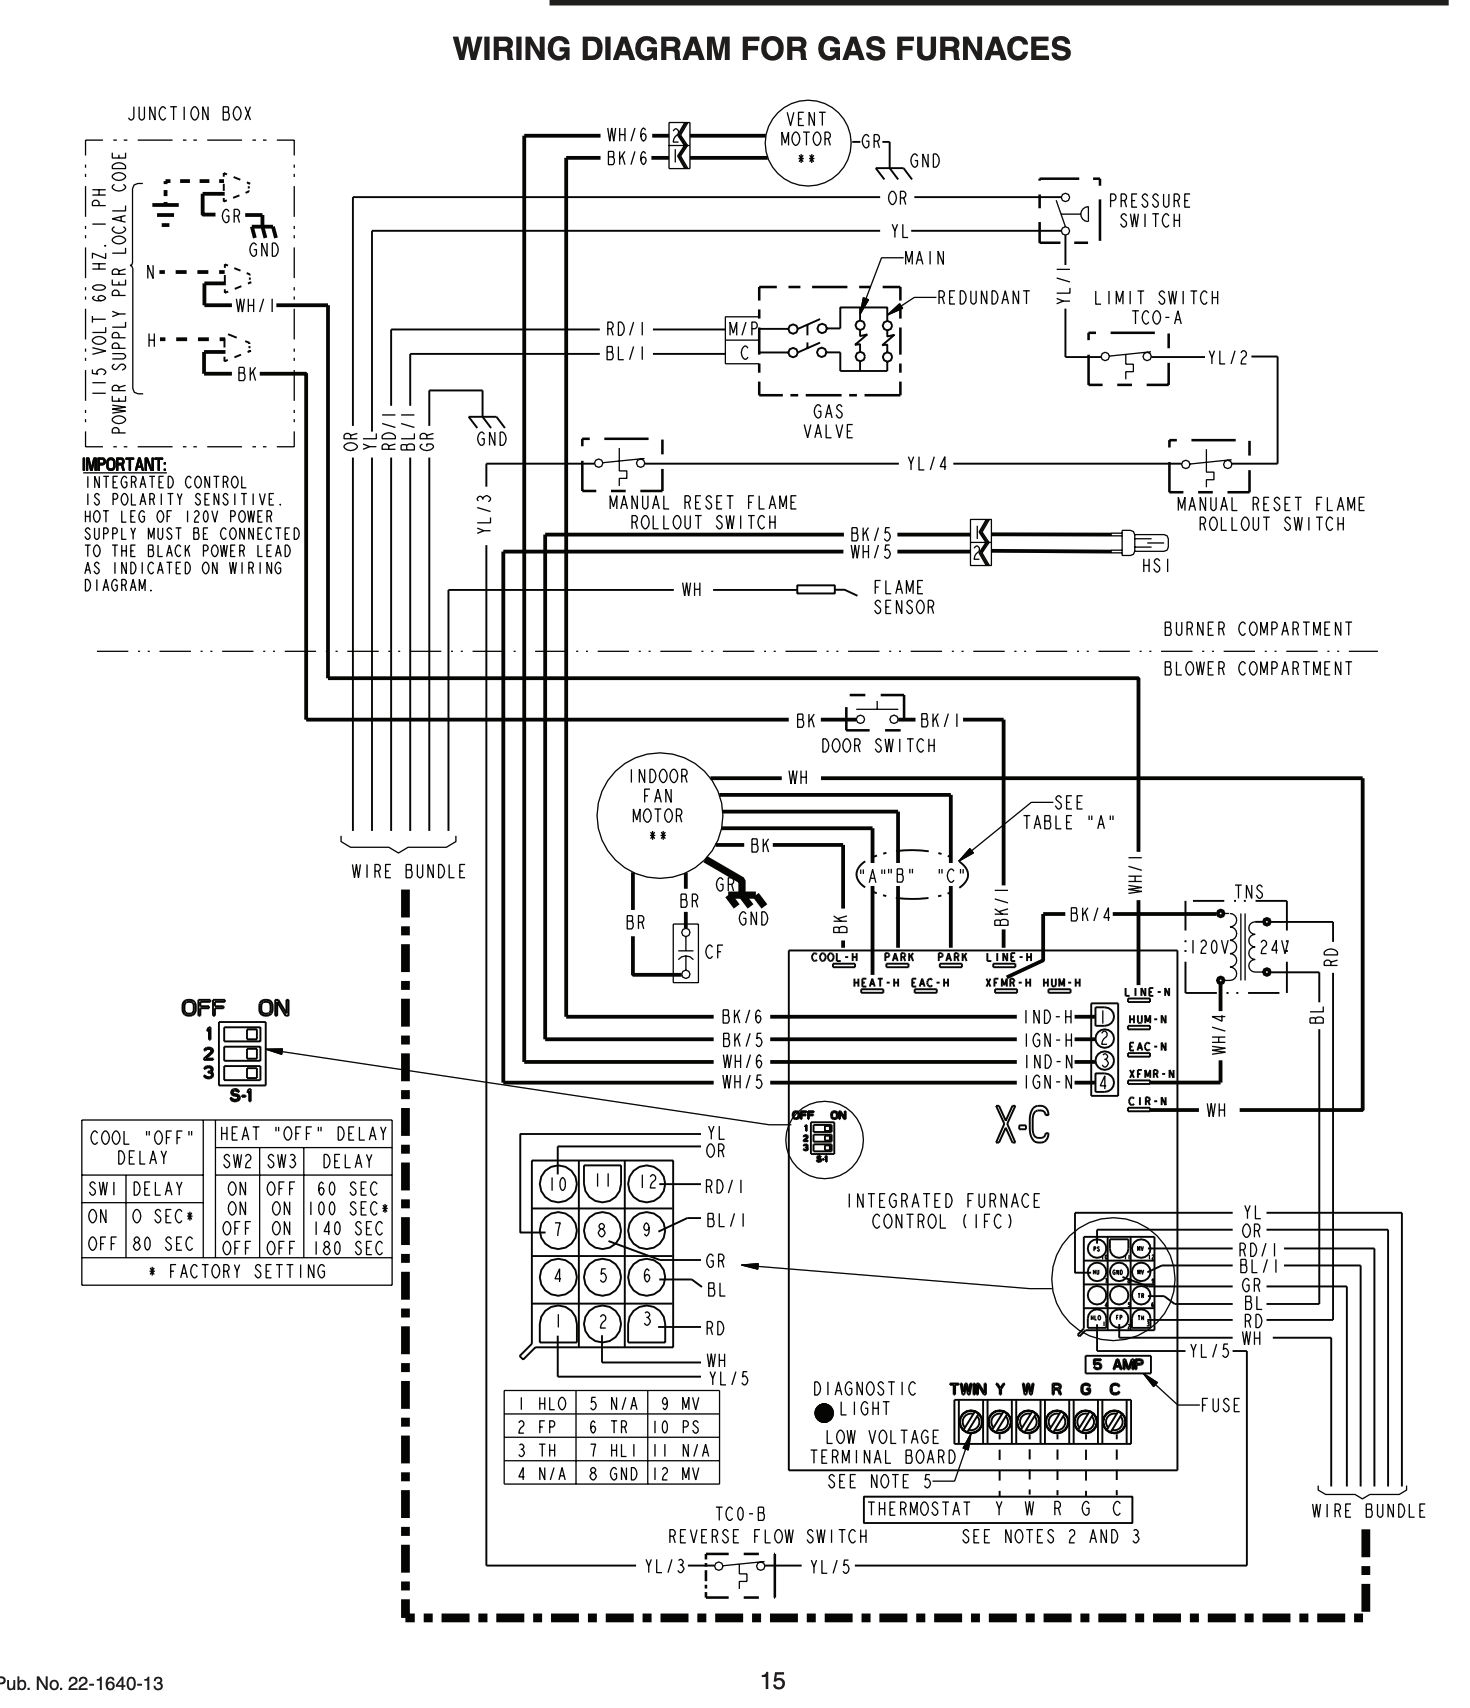 Installation And Service Manuals For Heating, Heat Pump, And Air - Trane Rooftop Unit Wiring Diagram